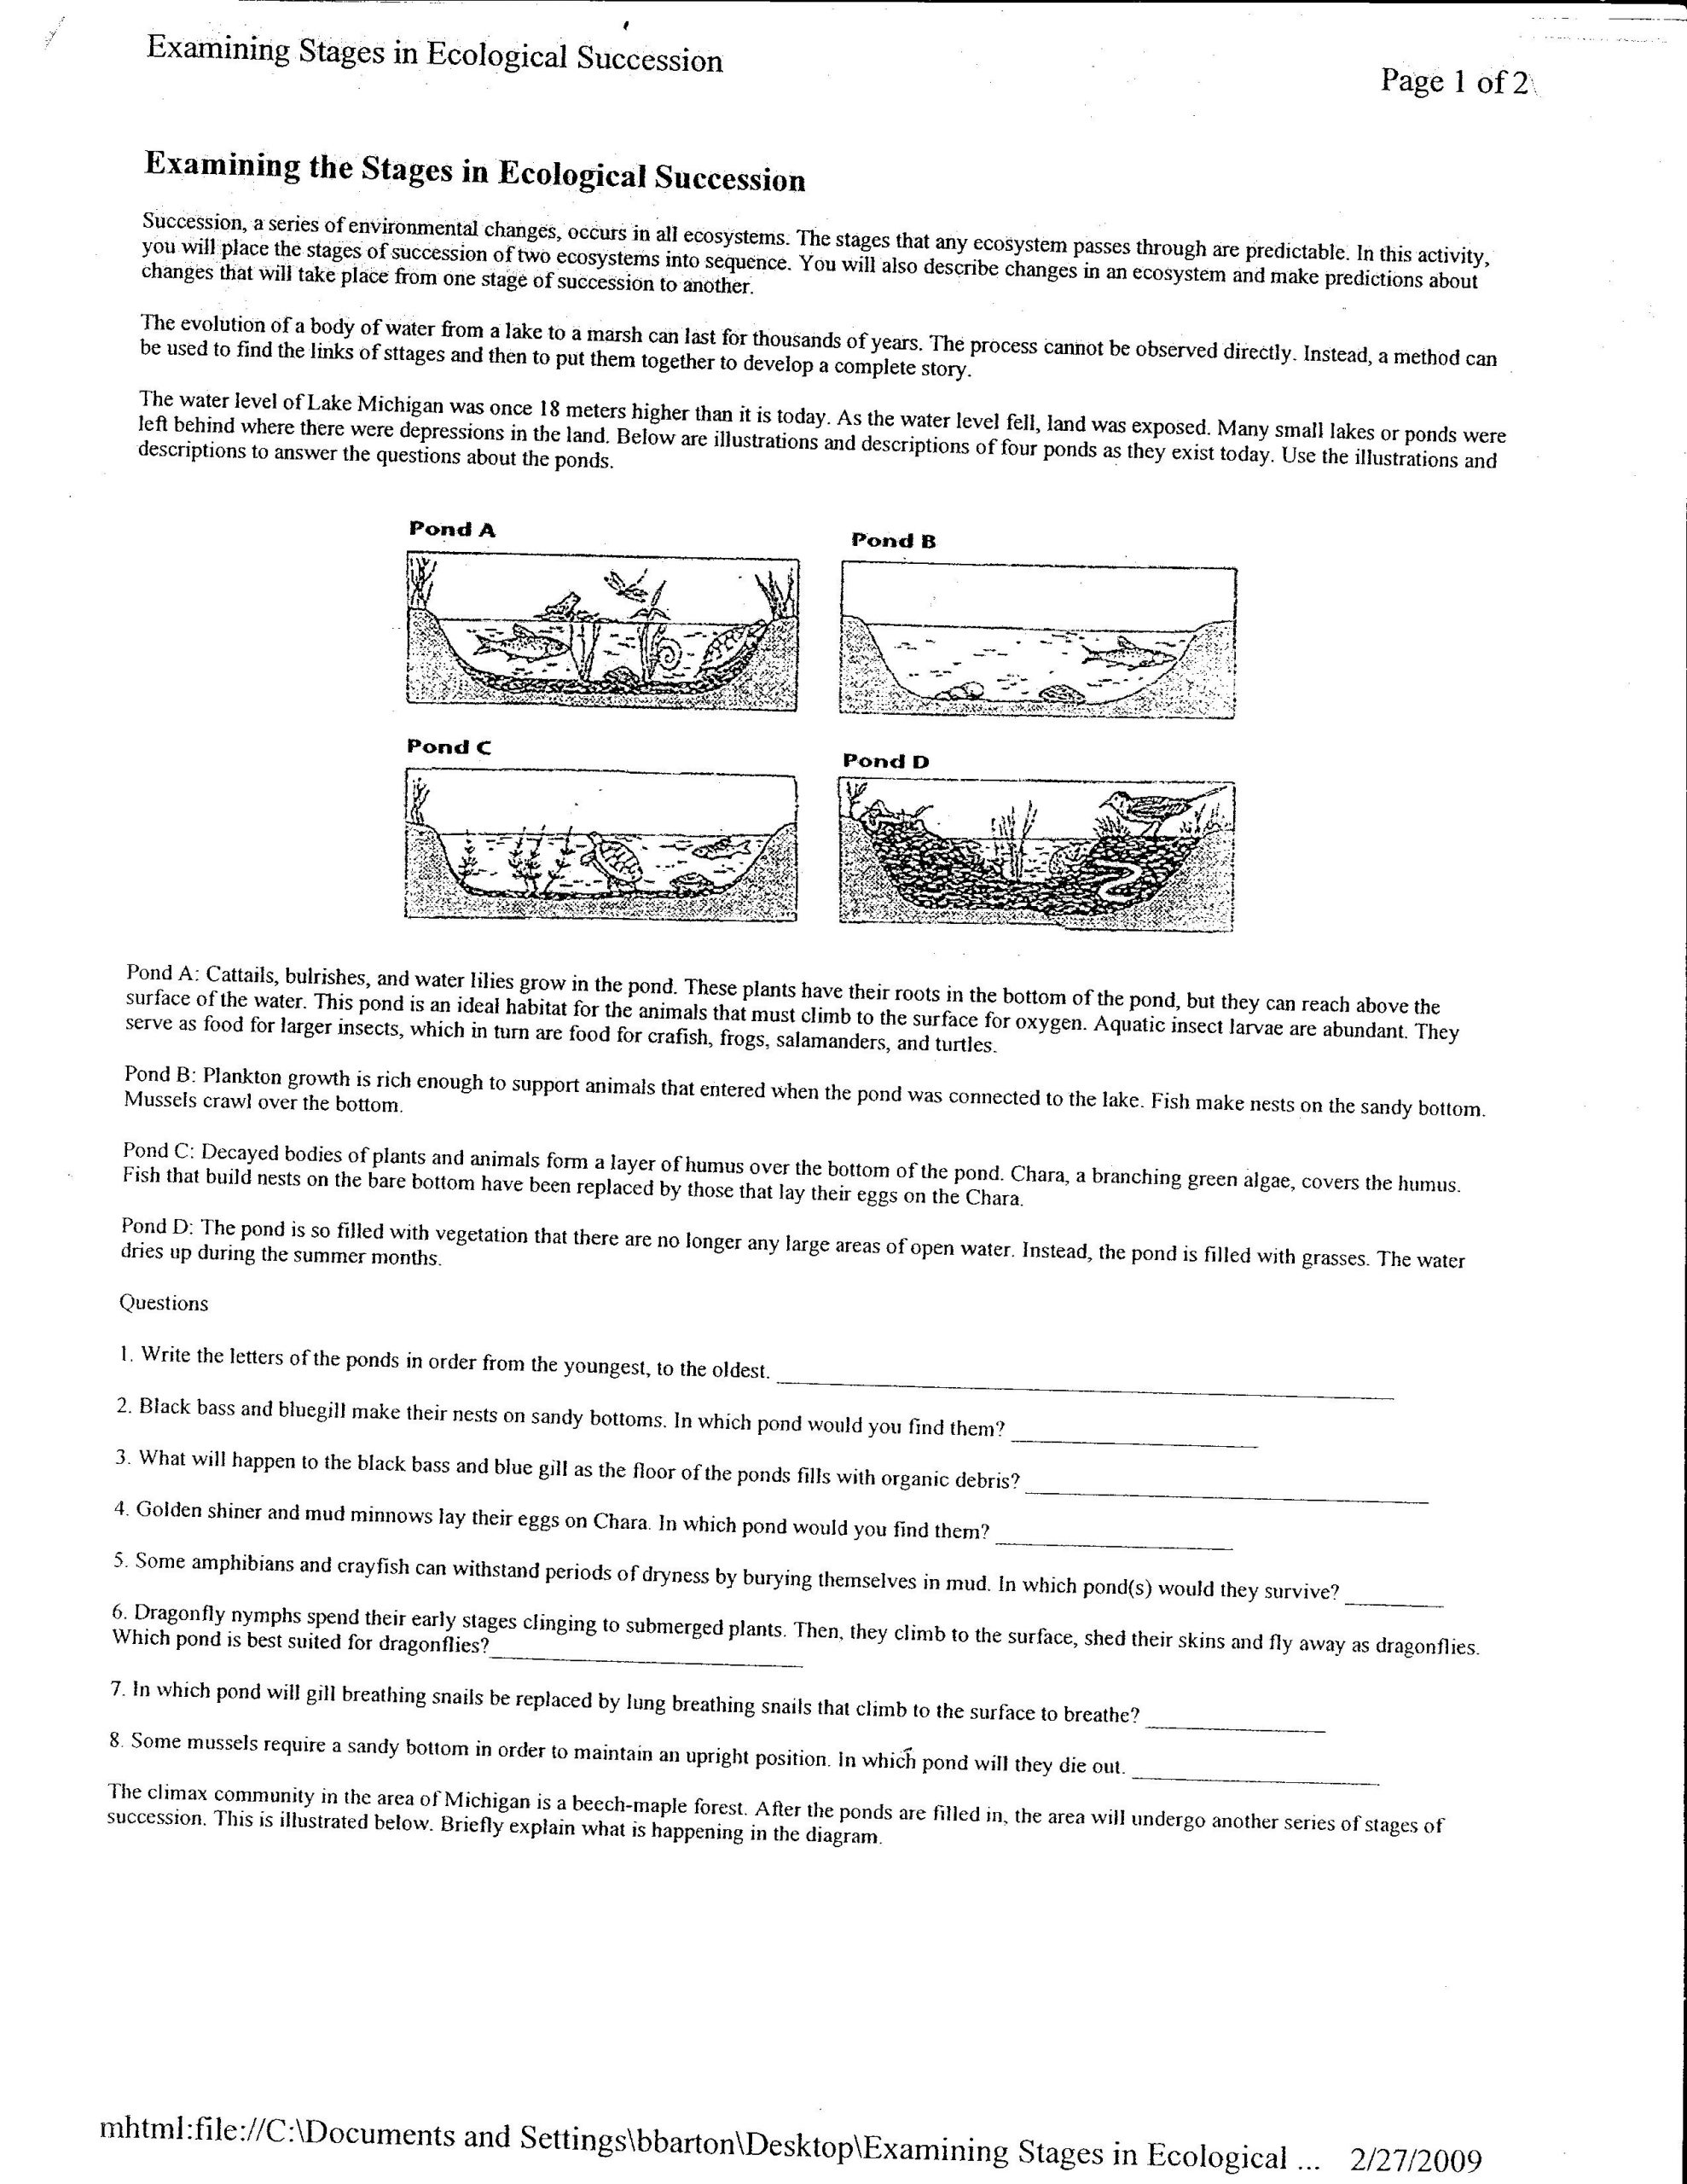 Ecological Succession Worksheet Answers